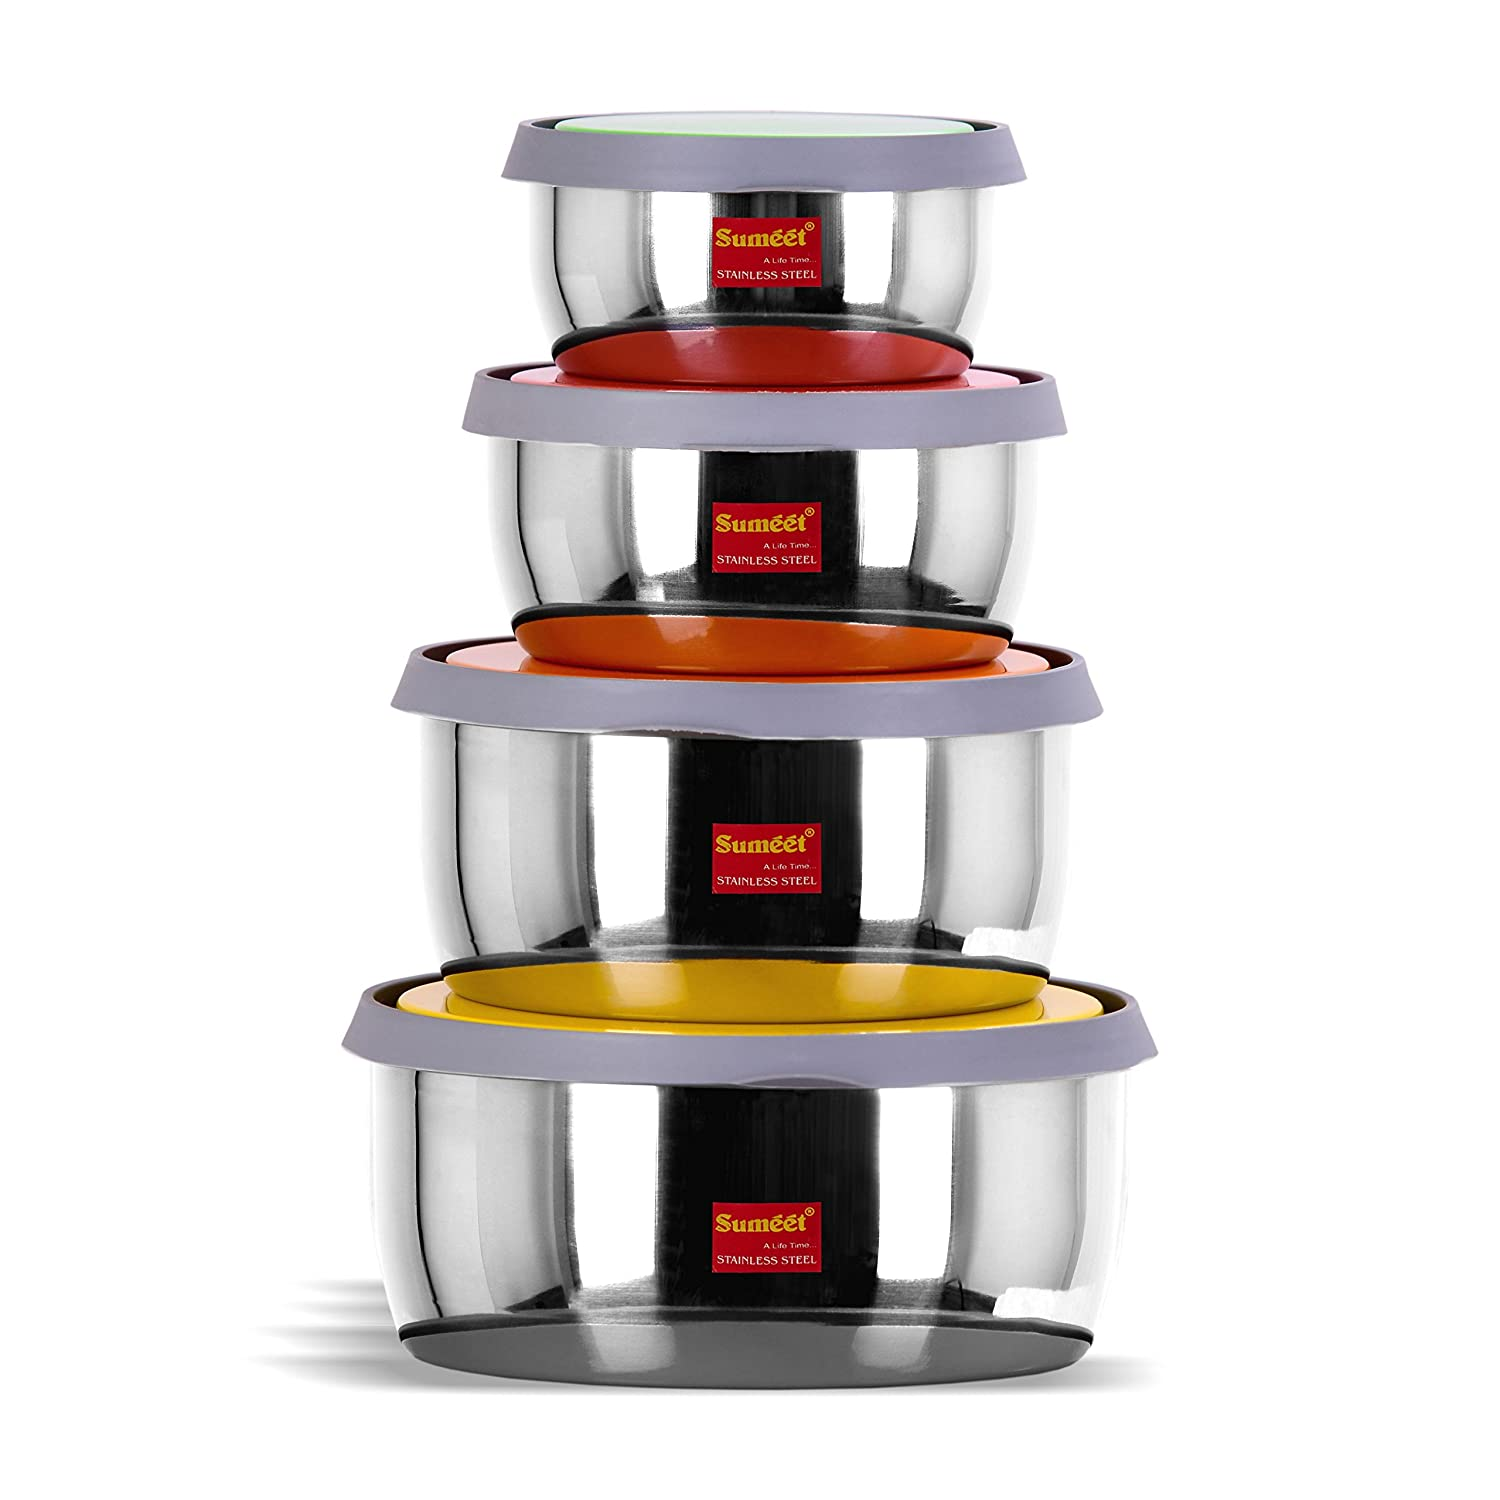 Sumeet Stainless Steel Food Storage Airtight & Leak Proof Containers Set 400ML to 1 LTR, Set of 4pc at Amazon ₹ 714